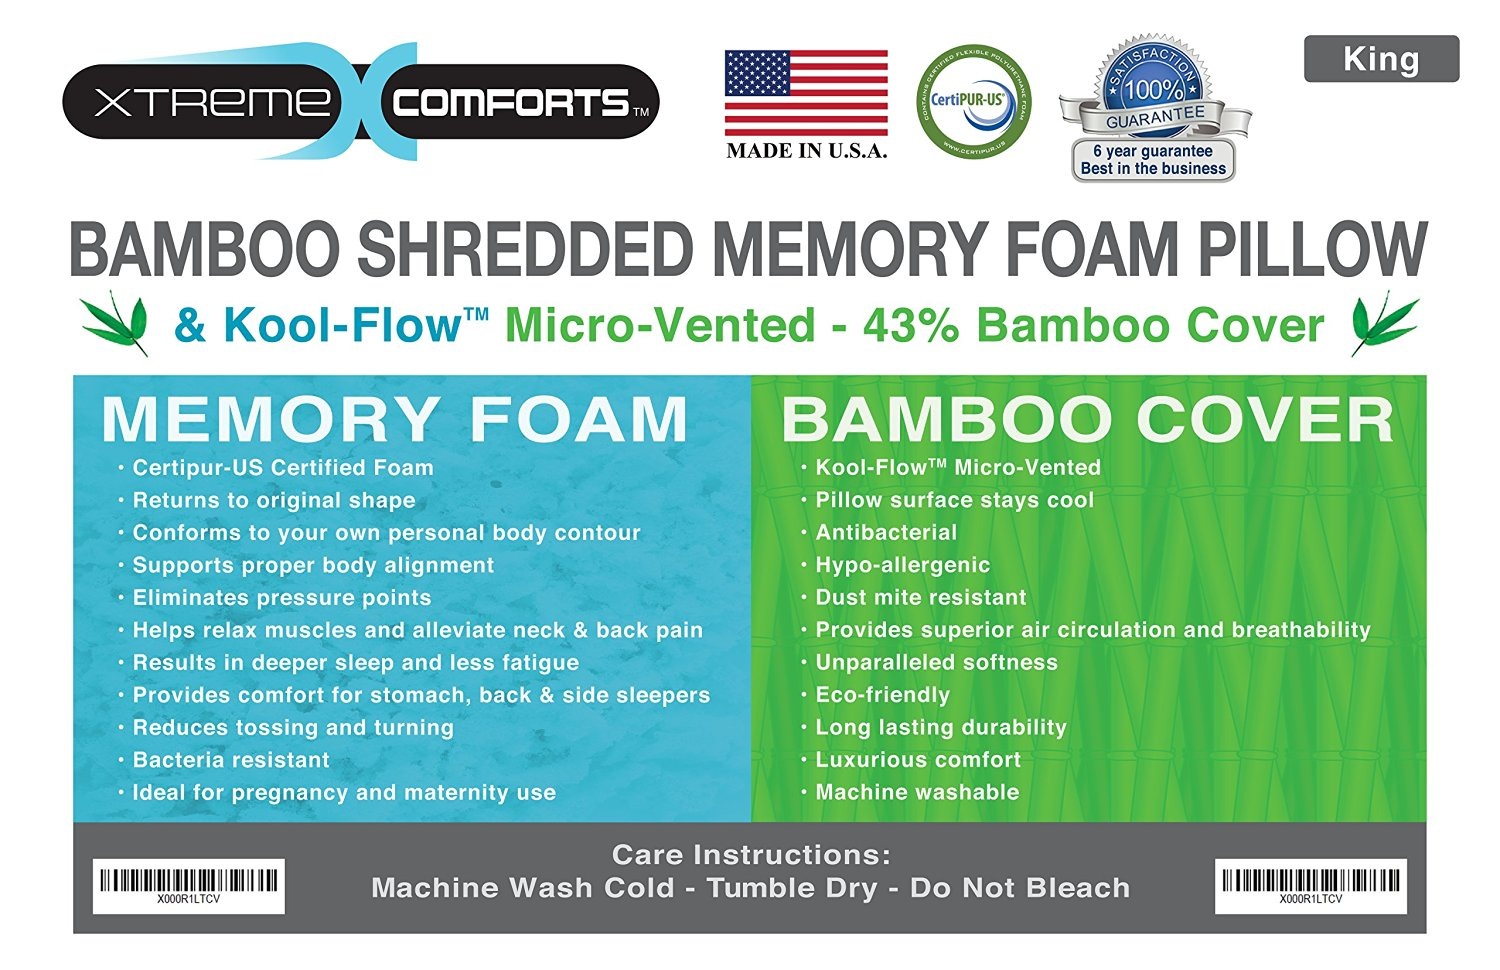 xtreme comforts shredded memory foam pillow with kool flow bamboo cover machine washable walmartcom